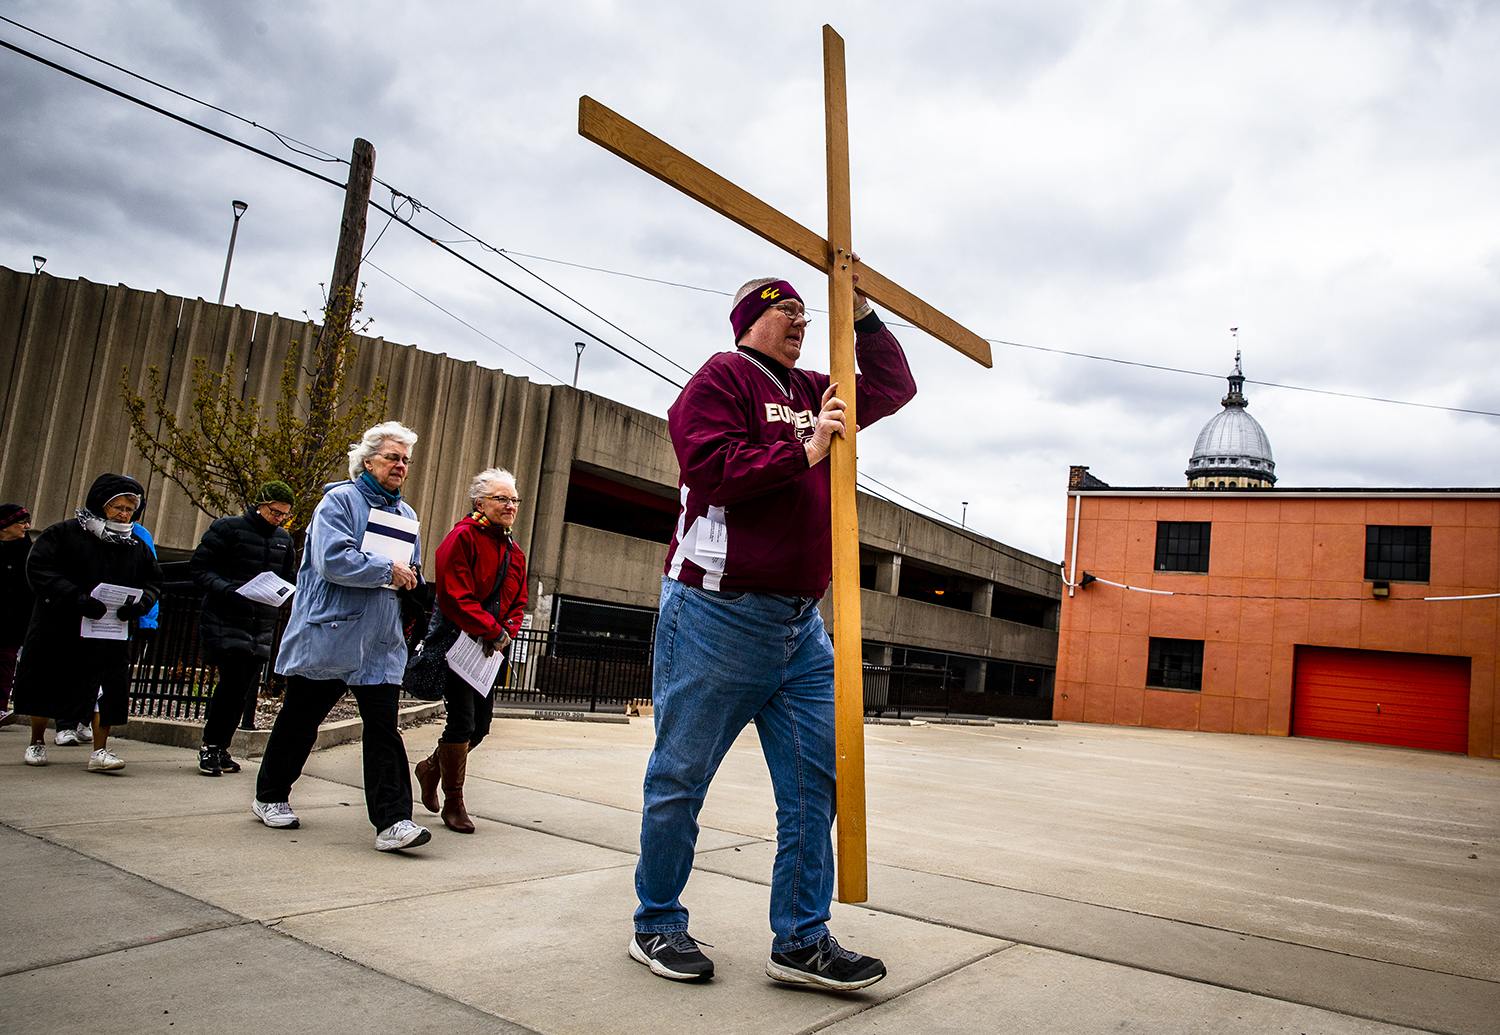 Bruce Bangert leads a group carrying a cross up South Fourth Street to the fourth of fourteen stops during the annual Good Friday Way of the Cross walk sponsored by the First Church of the Brethren, Hospital Sisters of St. Francis, Pax Christi Springfield and the Springfield Dominican Sisters, Friday, April 19, 2019, in Springfield, Ill. The Good Friday Way of the Cross connects social justice themes to locations, buildings and institutions around downtown Springfield. The fourth stop was a theme of violence and stoped in front of the Dept. of Children and Family Services and highlighted the need to protect children. [Justin L. Fowler/The State Journal-Register]